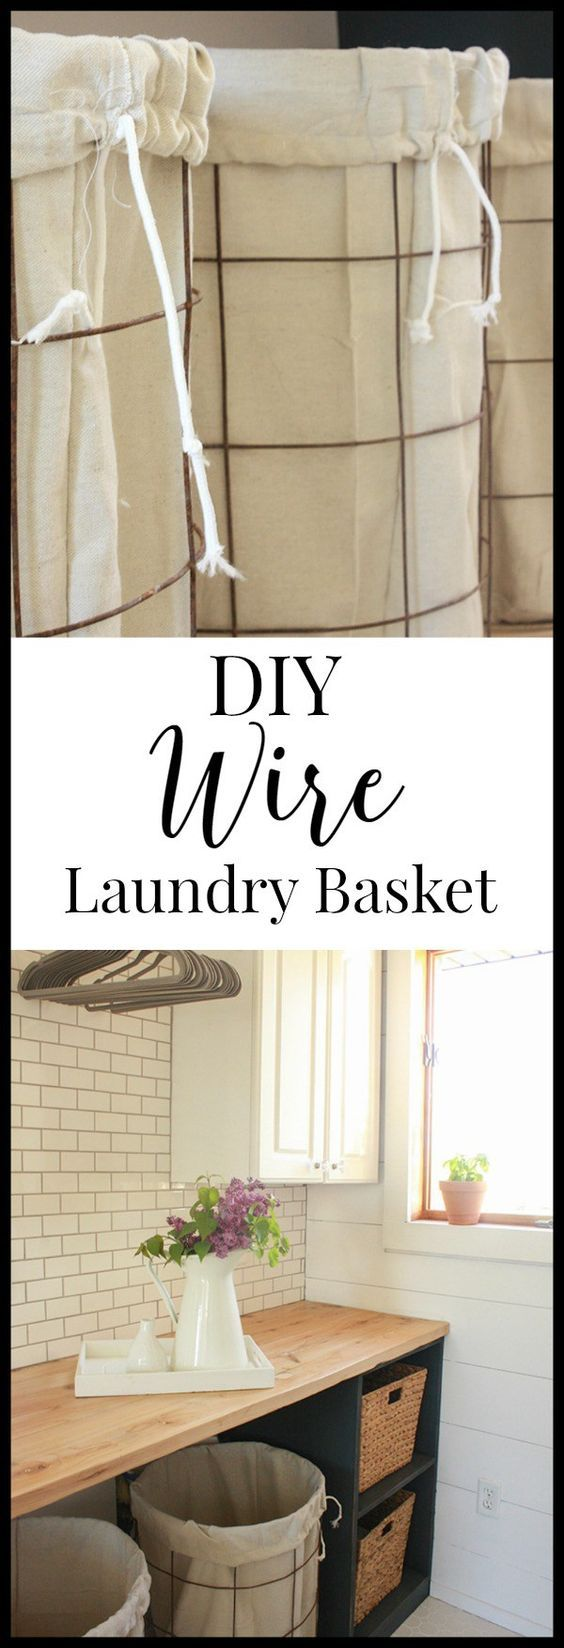 DIY wire laundry baskets with drop cloth liners. These were made in one afternoon and cost less than 40 dollars!   Twleveonmain.com